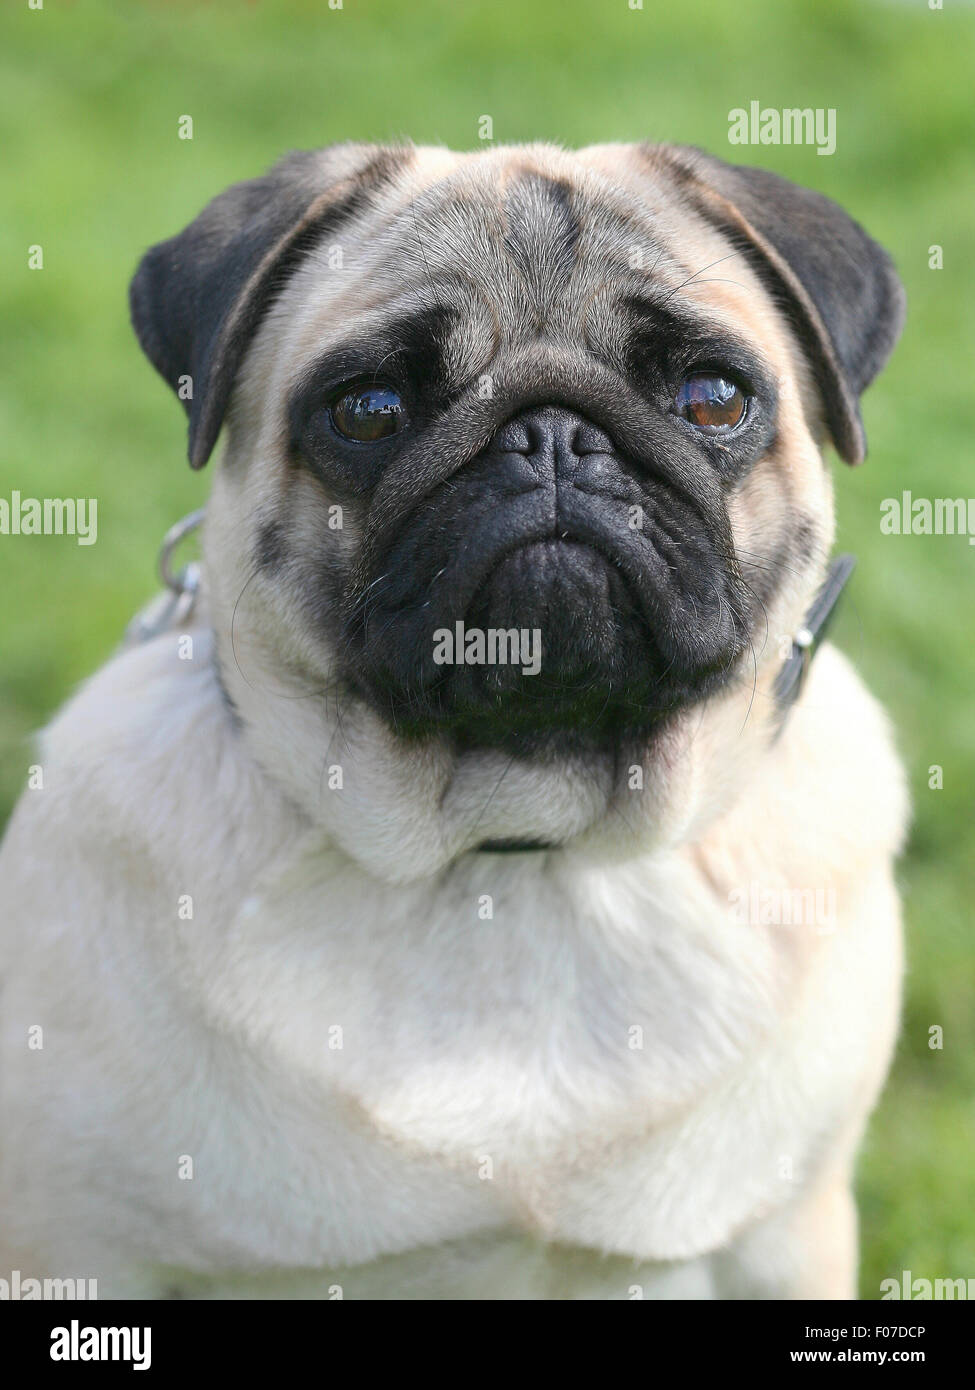 The portrait of Pug dog in the garden - Stock Image